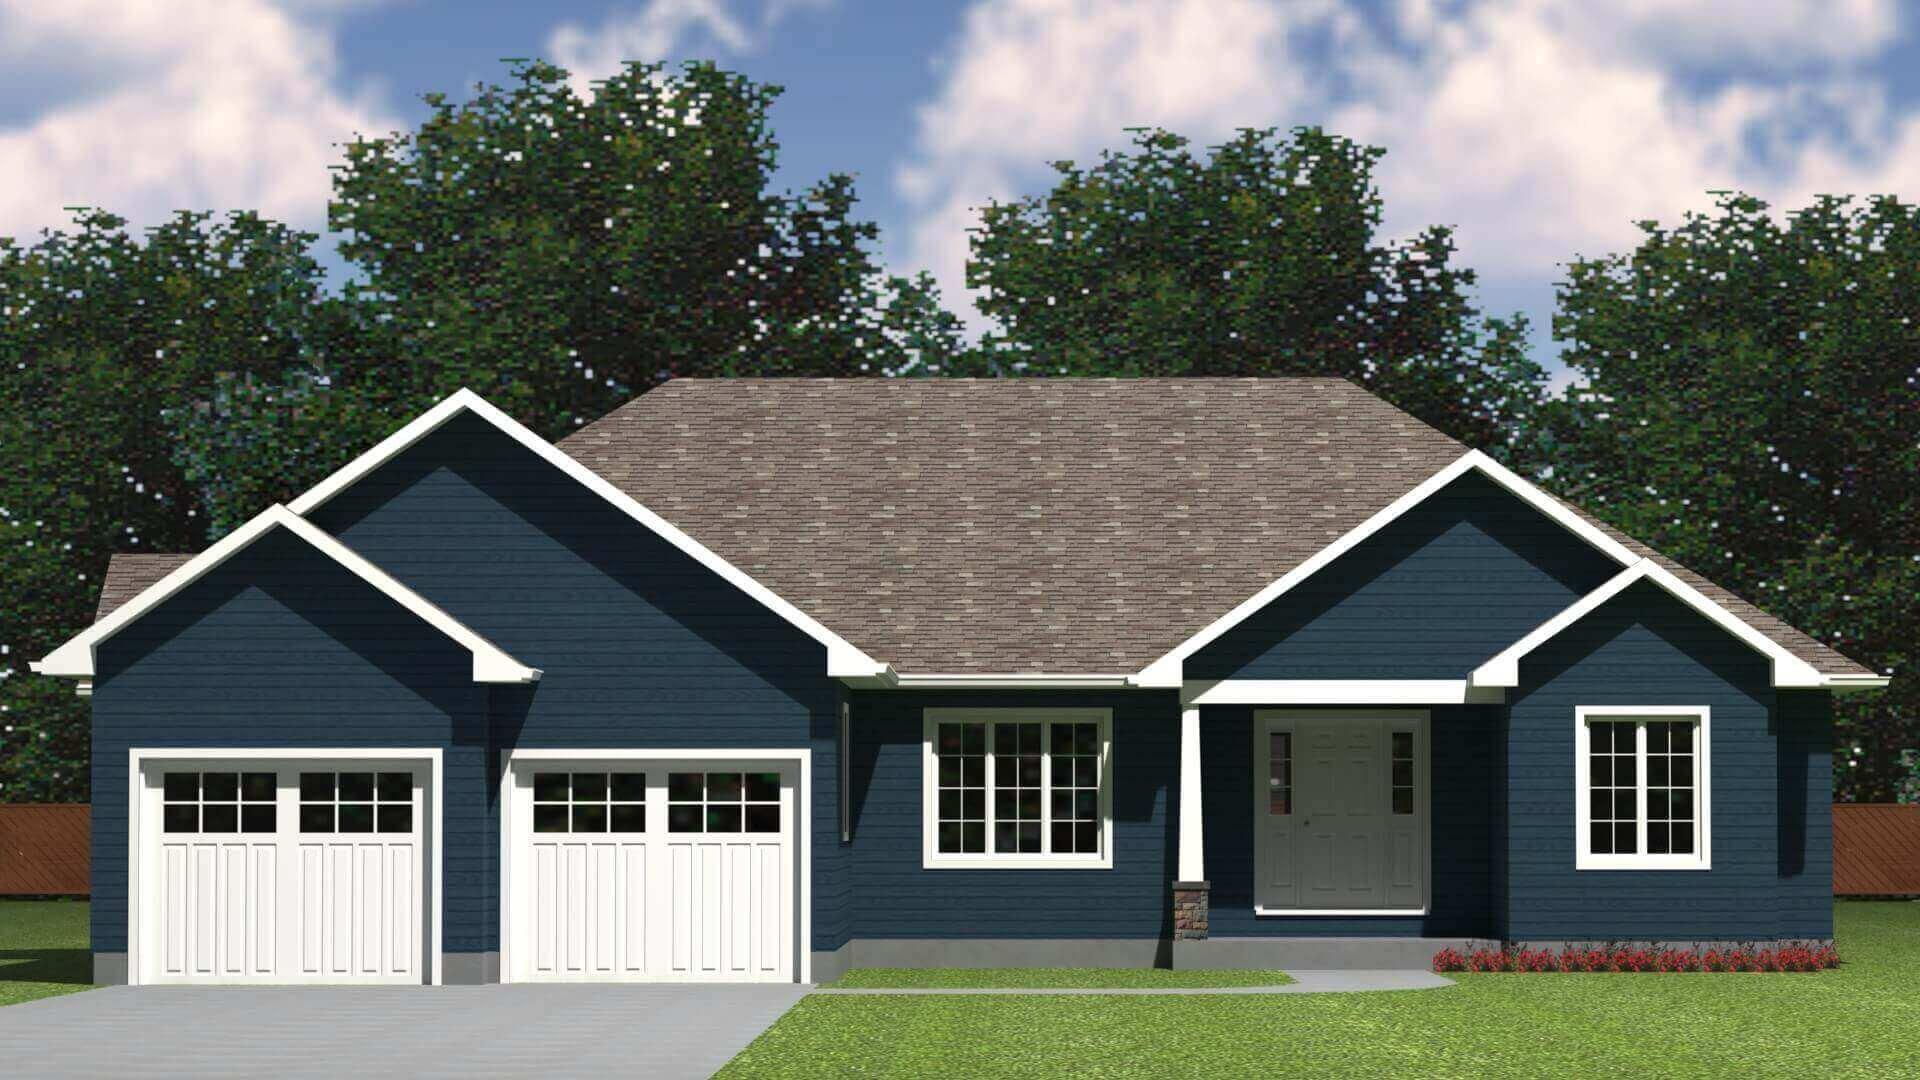 1893 sq.ft. timber mart house 3 bed 2 bath exterior render